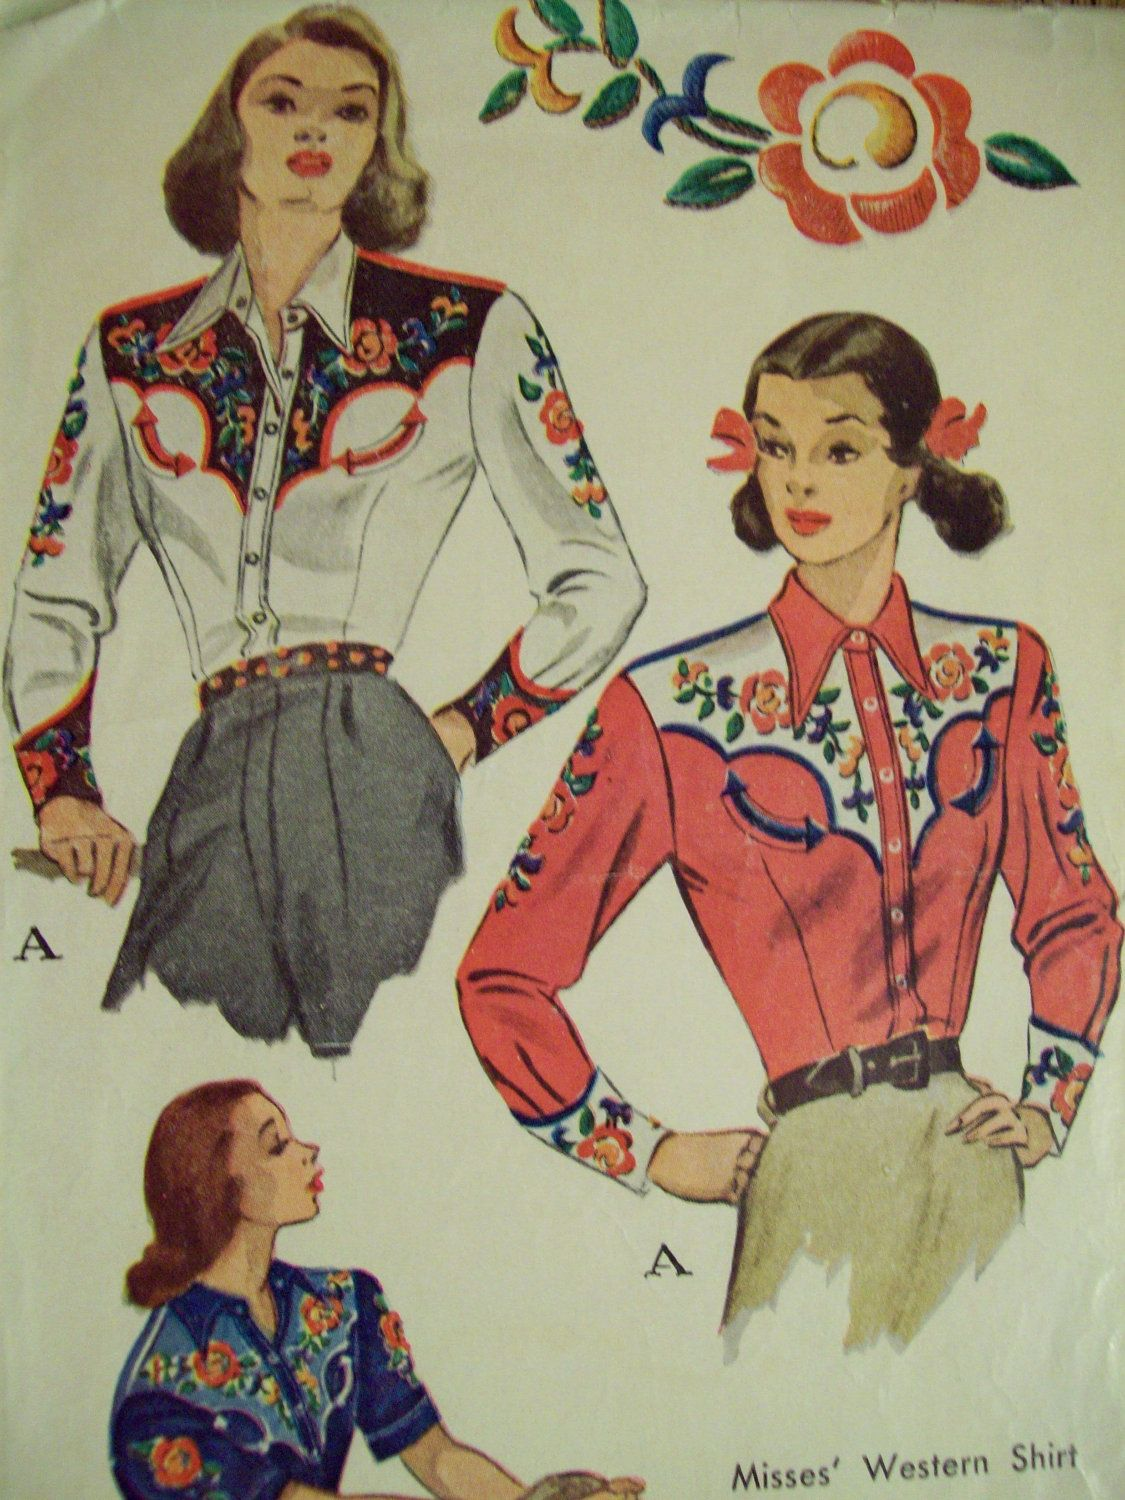 Western Shirt Patterns For Women's : western, shirt, patterns, women's, VINTAGE, Sewing, Pattern, Amazing, 1940's, Women's, Vintage, Western, Wear,, Western,, Cowgirl